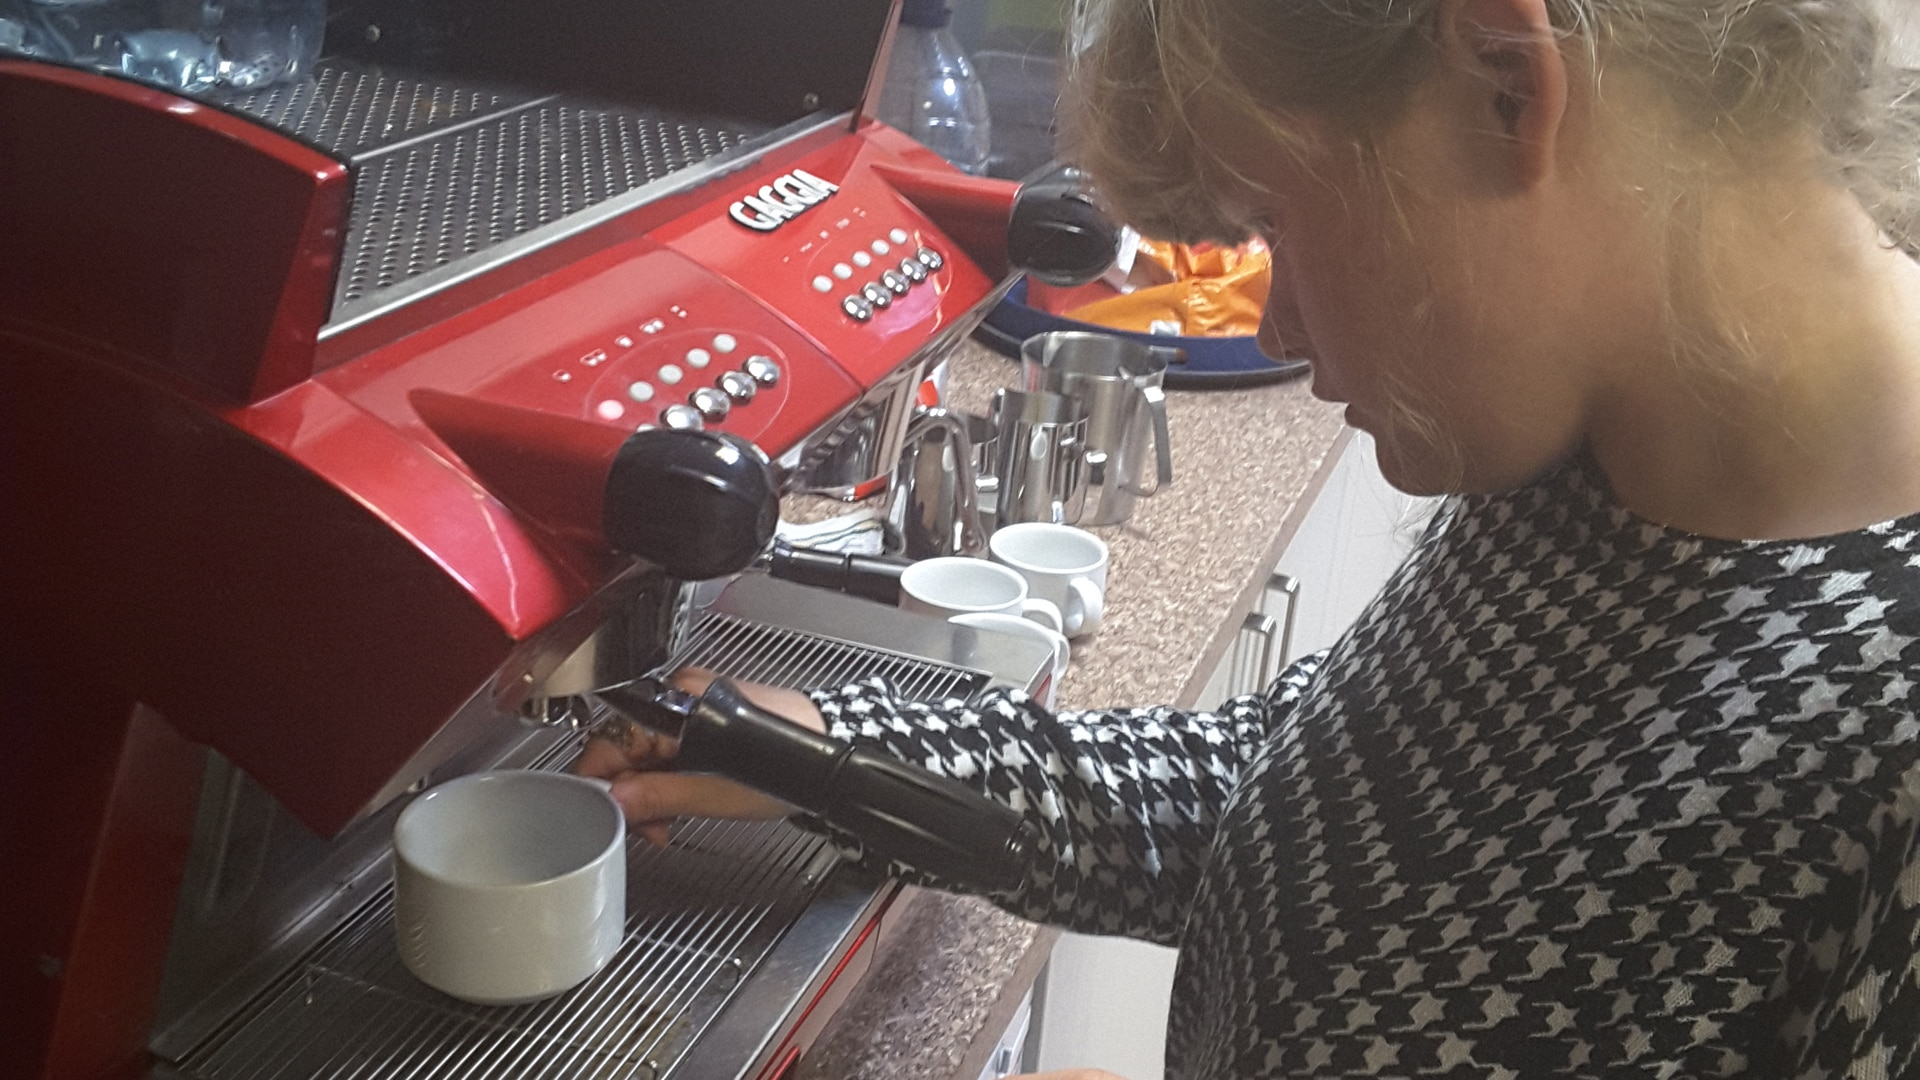 Magpies member using a coffee machine